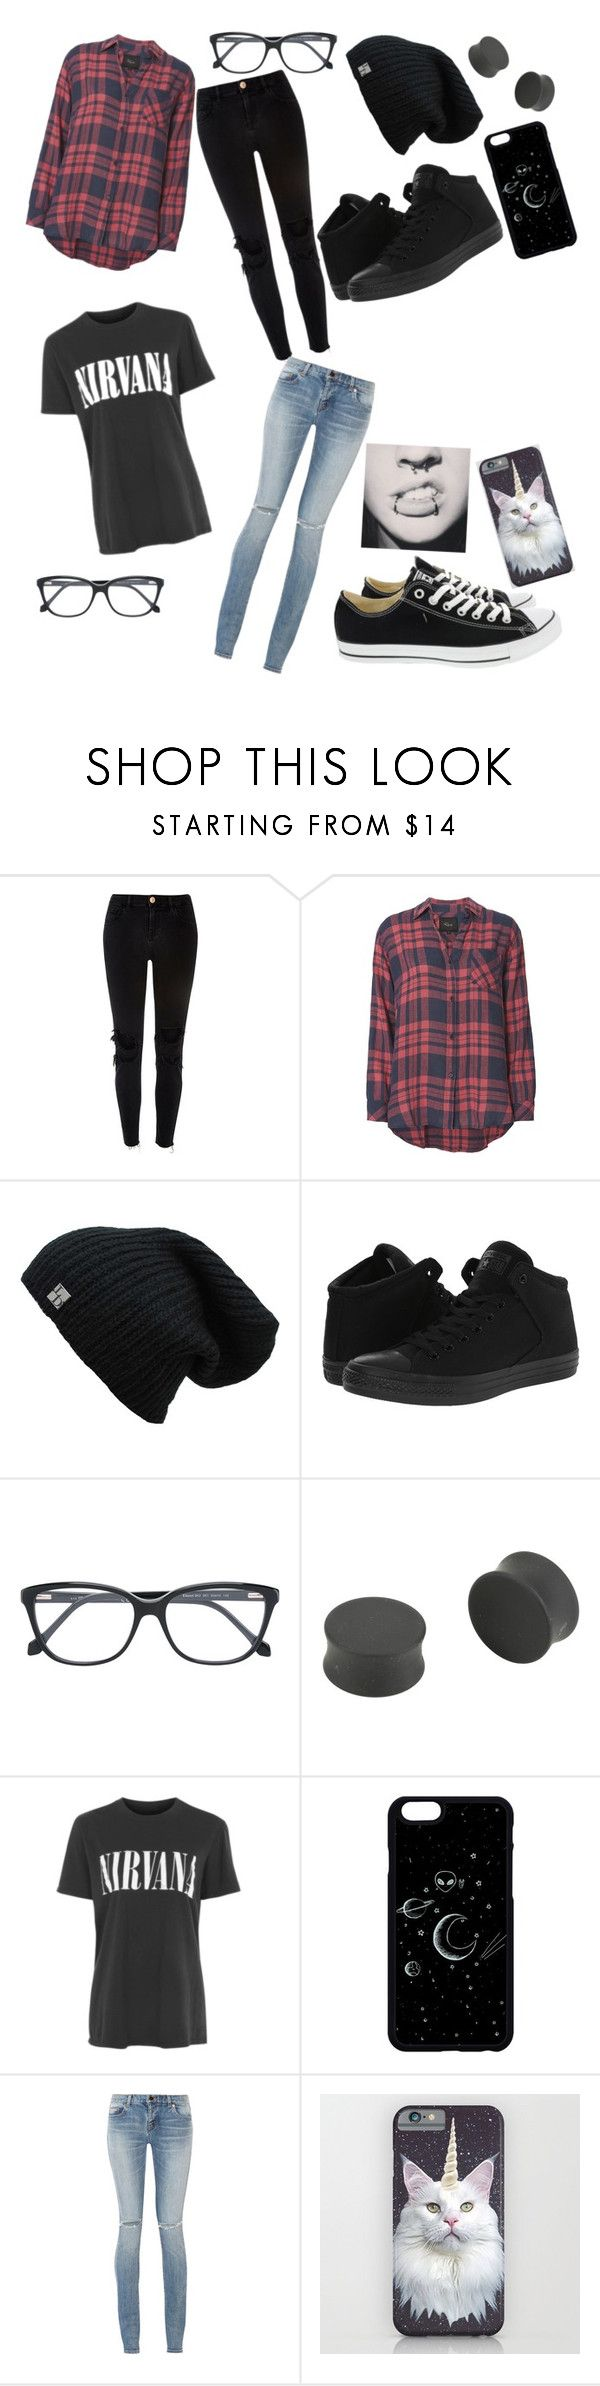 """Hipster"" by kute-clothes ❤ liked on Polyvore featuring River Island, Rails, Converse, Roberto Cavalli, Topshop and Yves Saint Laurent"